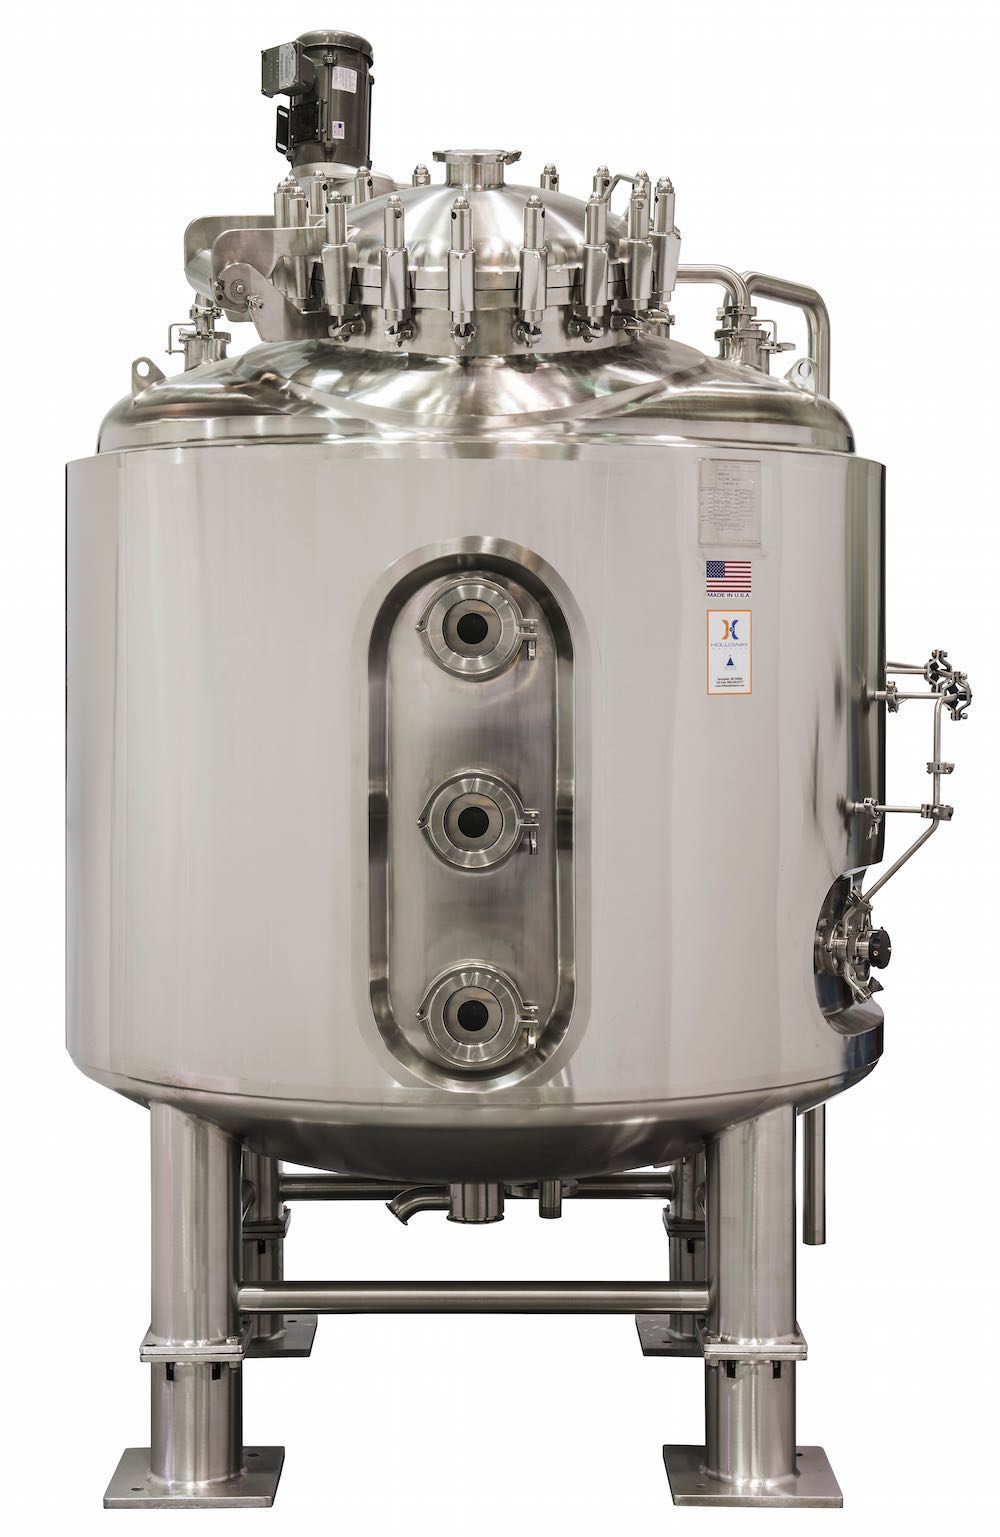 Holloway followed stainless steel ASME code for this ASME mixer tank.